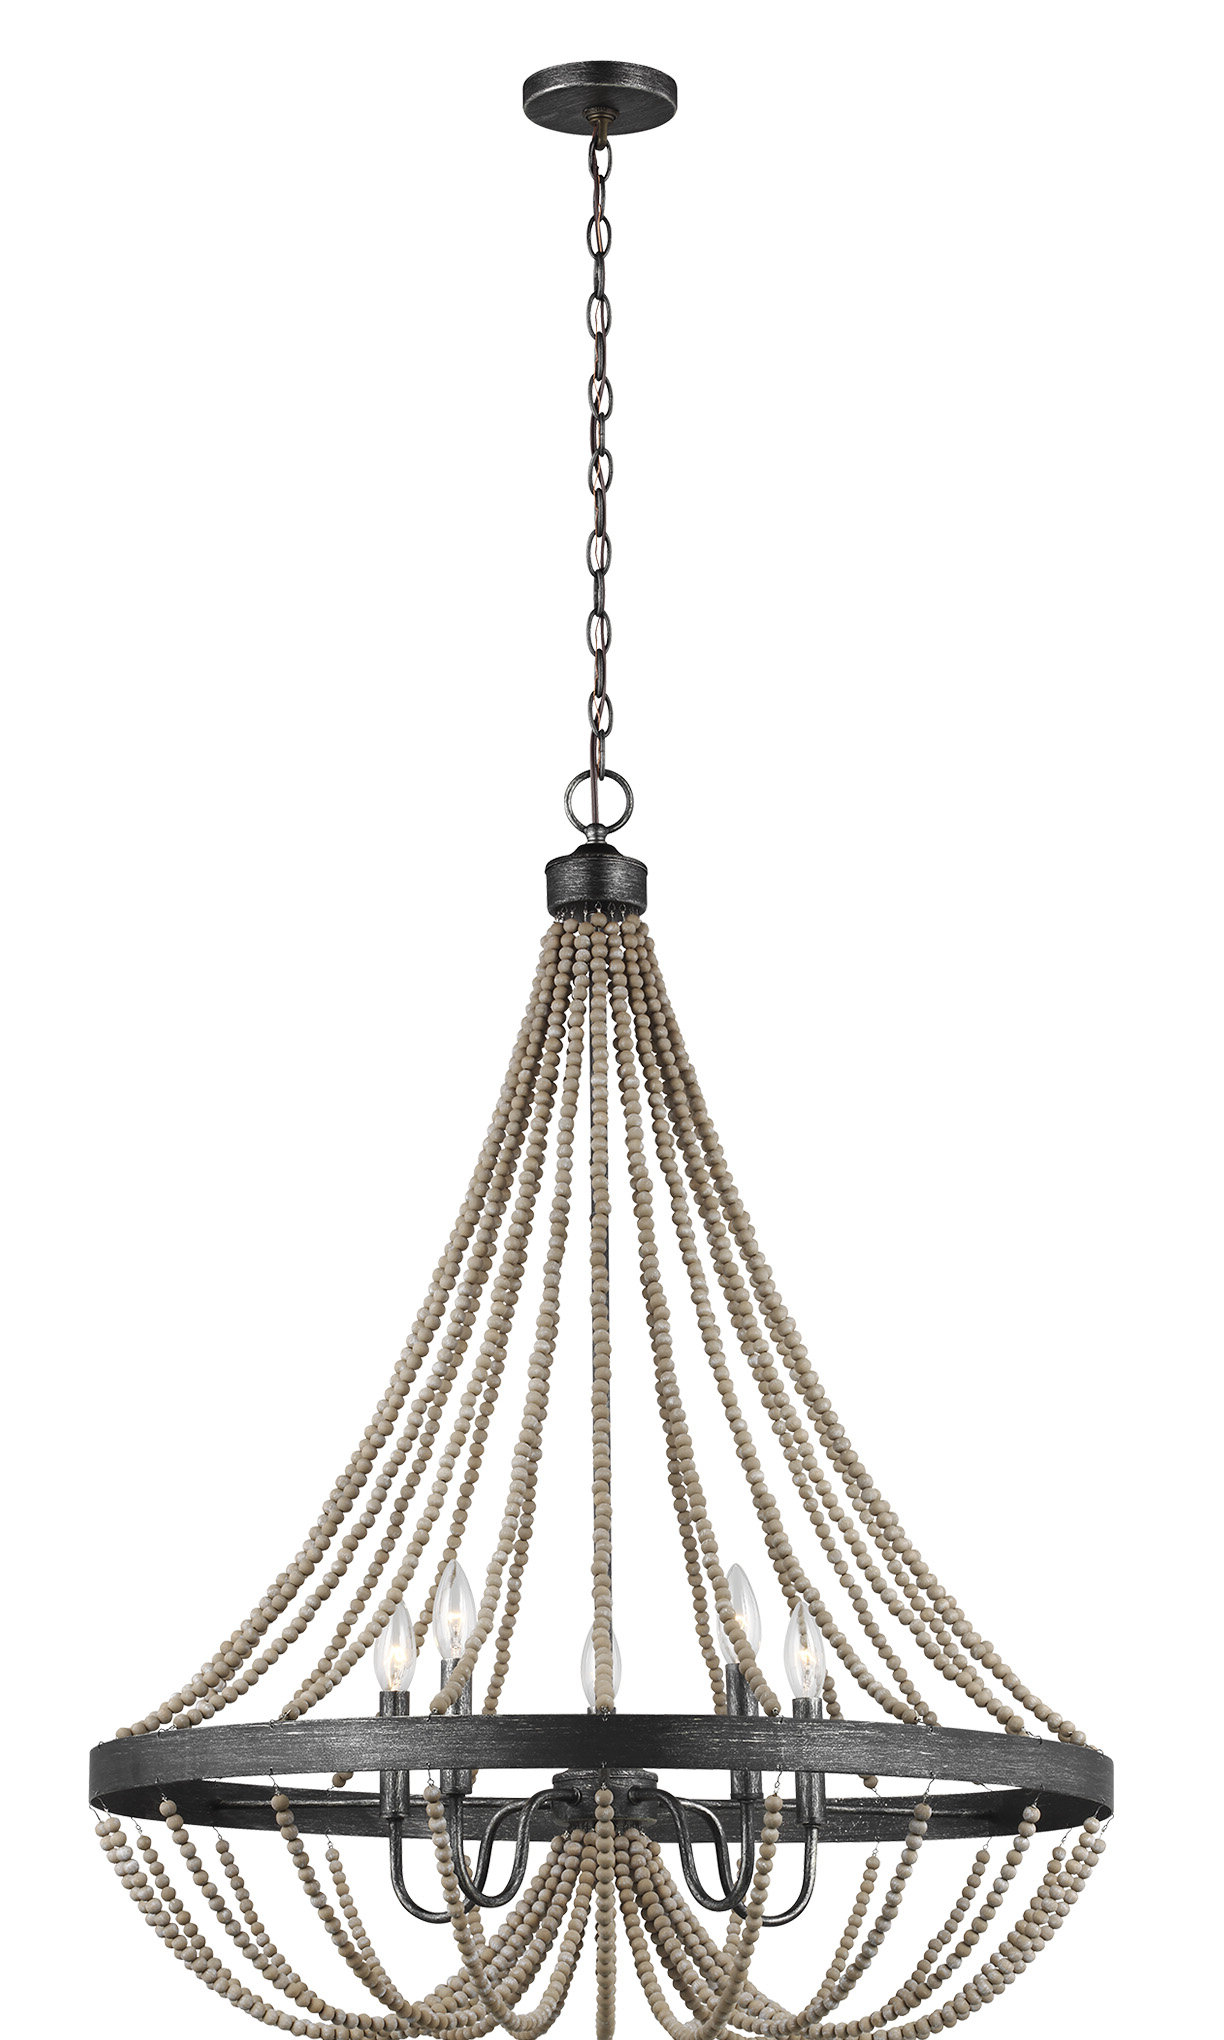 New Braunfels 5 Light Empire Chandelier In Well Known Ladonna 5 Light Novelty Chandeliers (View 4 of 25)